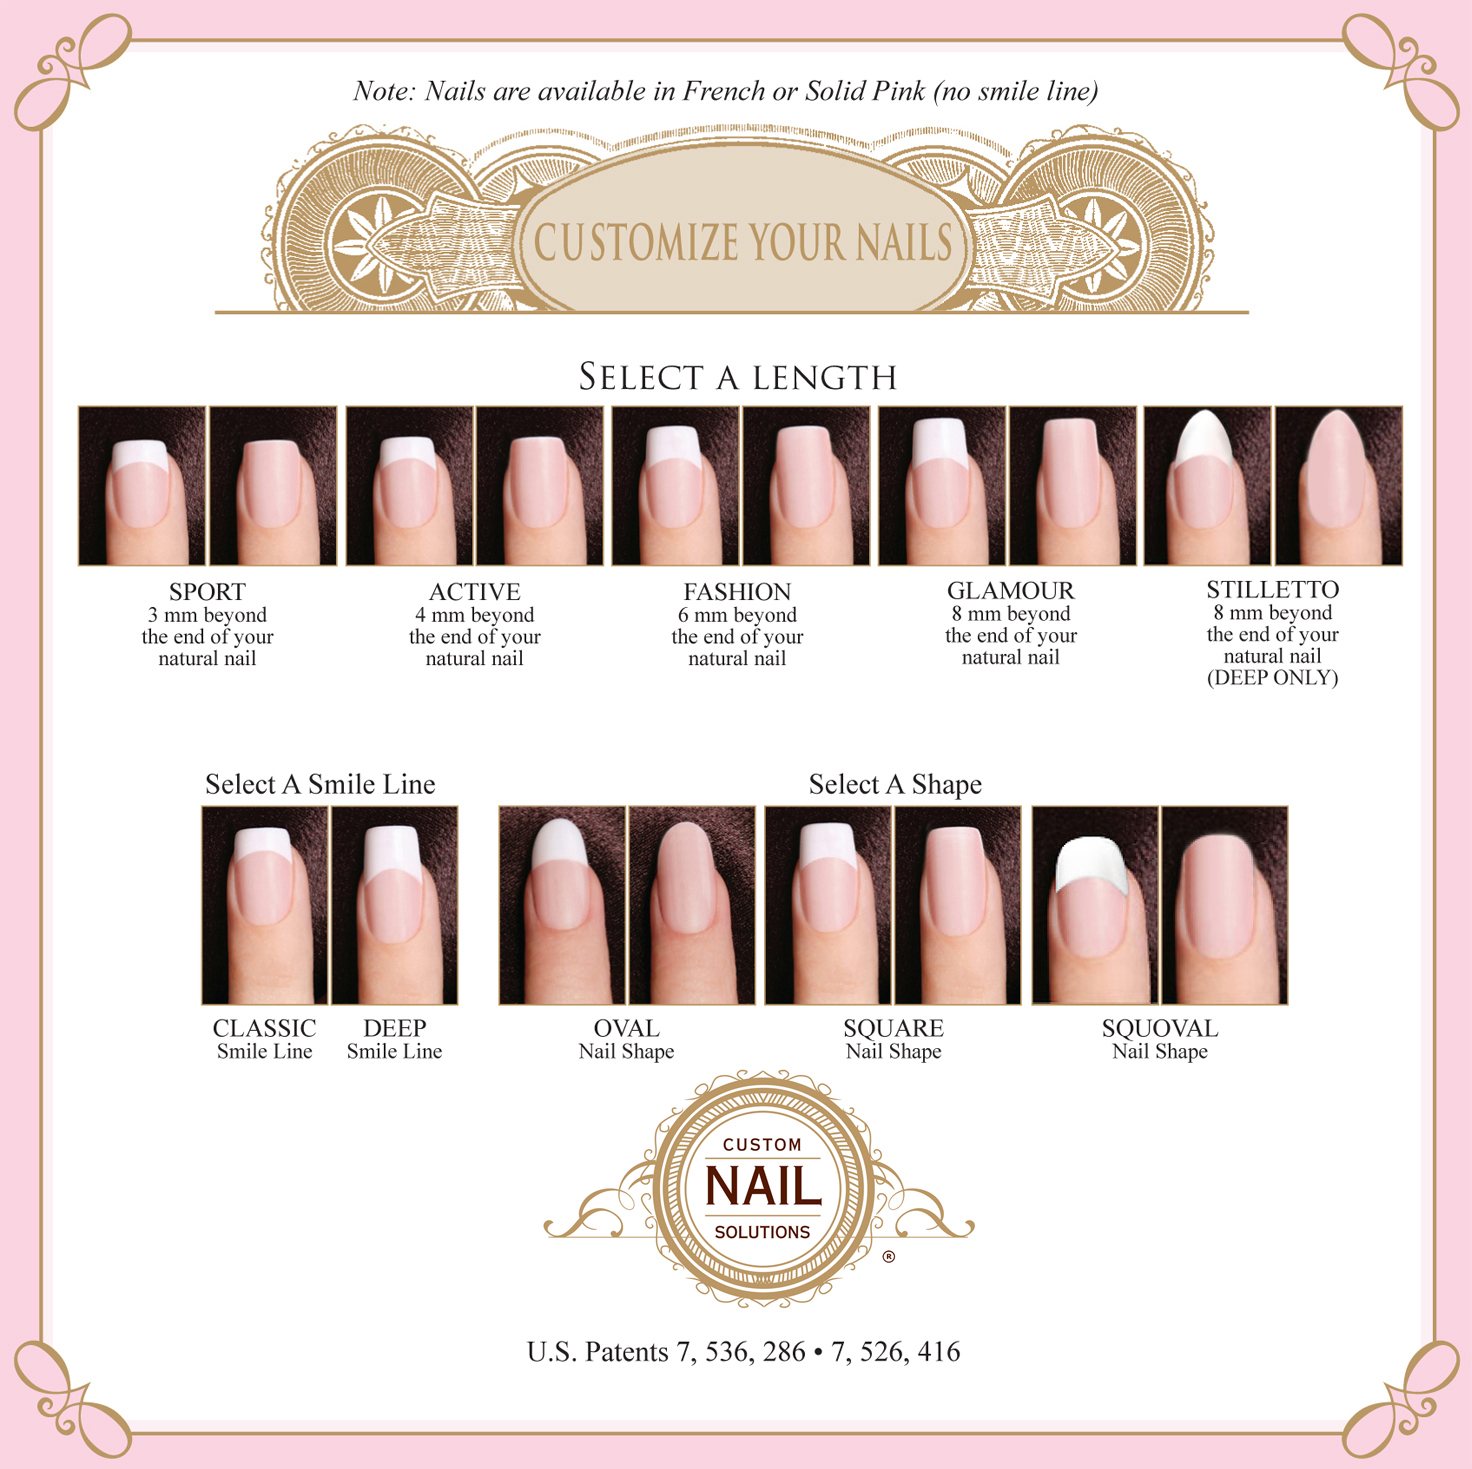 Win Custom Nail Impression System $139 Arv- Ends 6/4 US Only